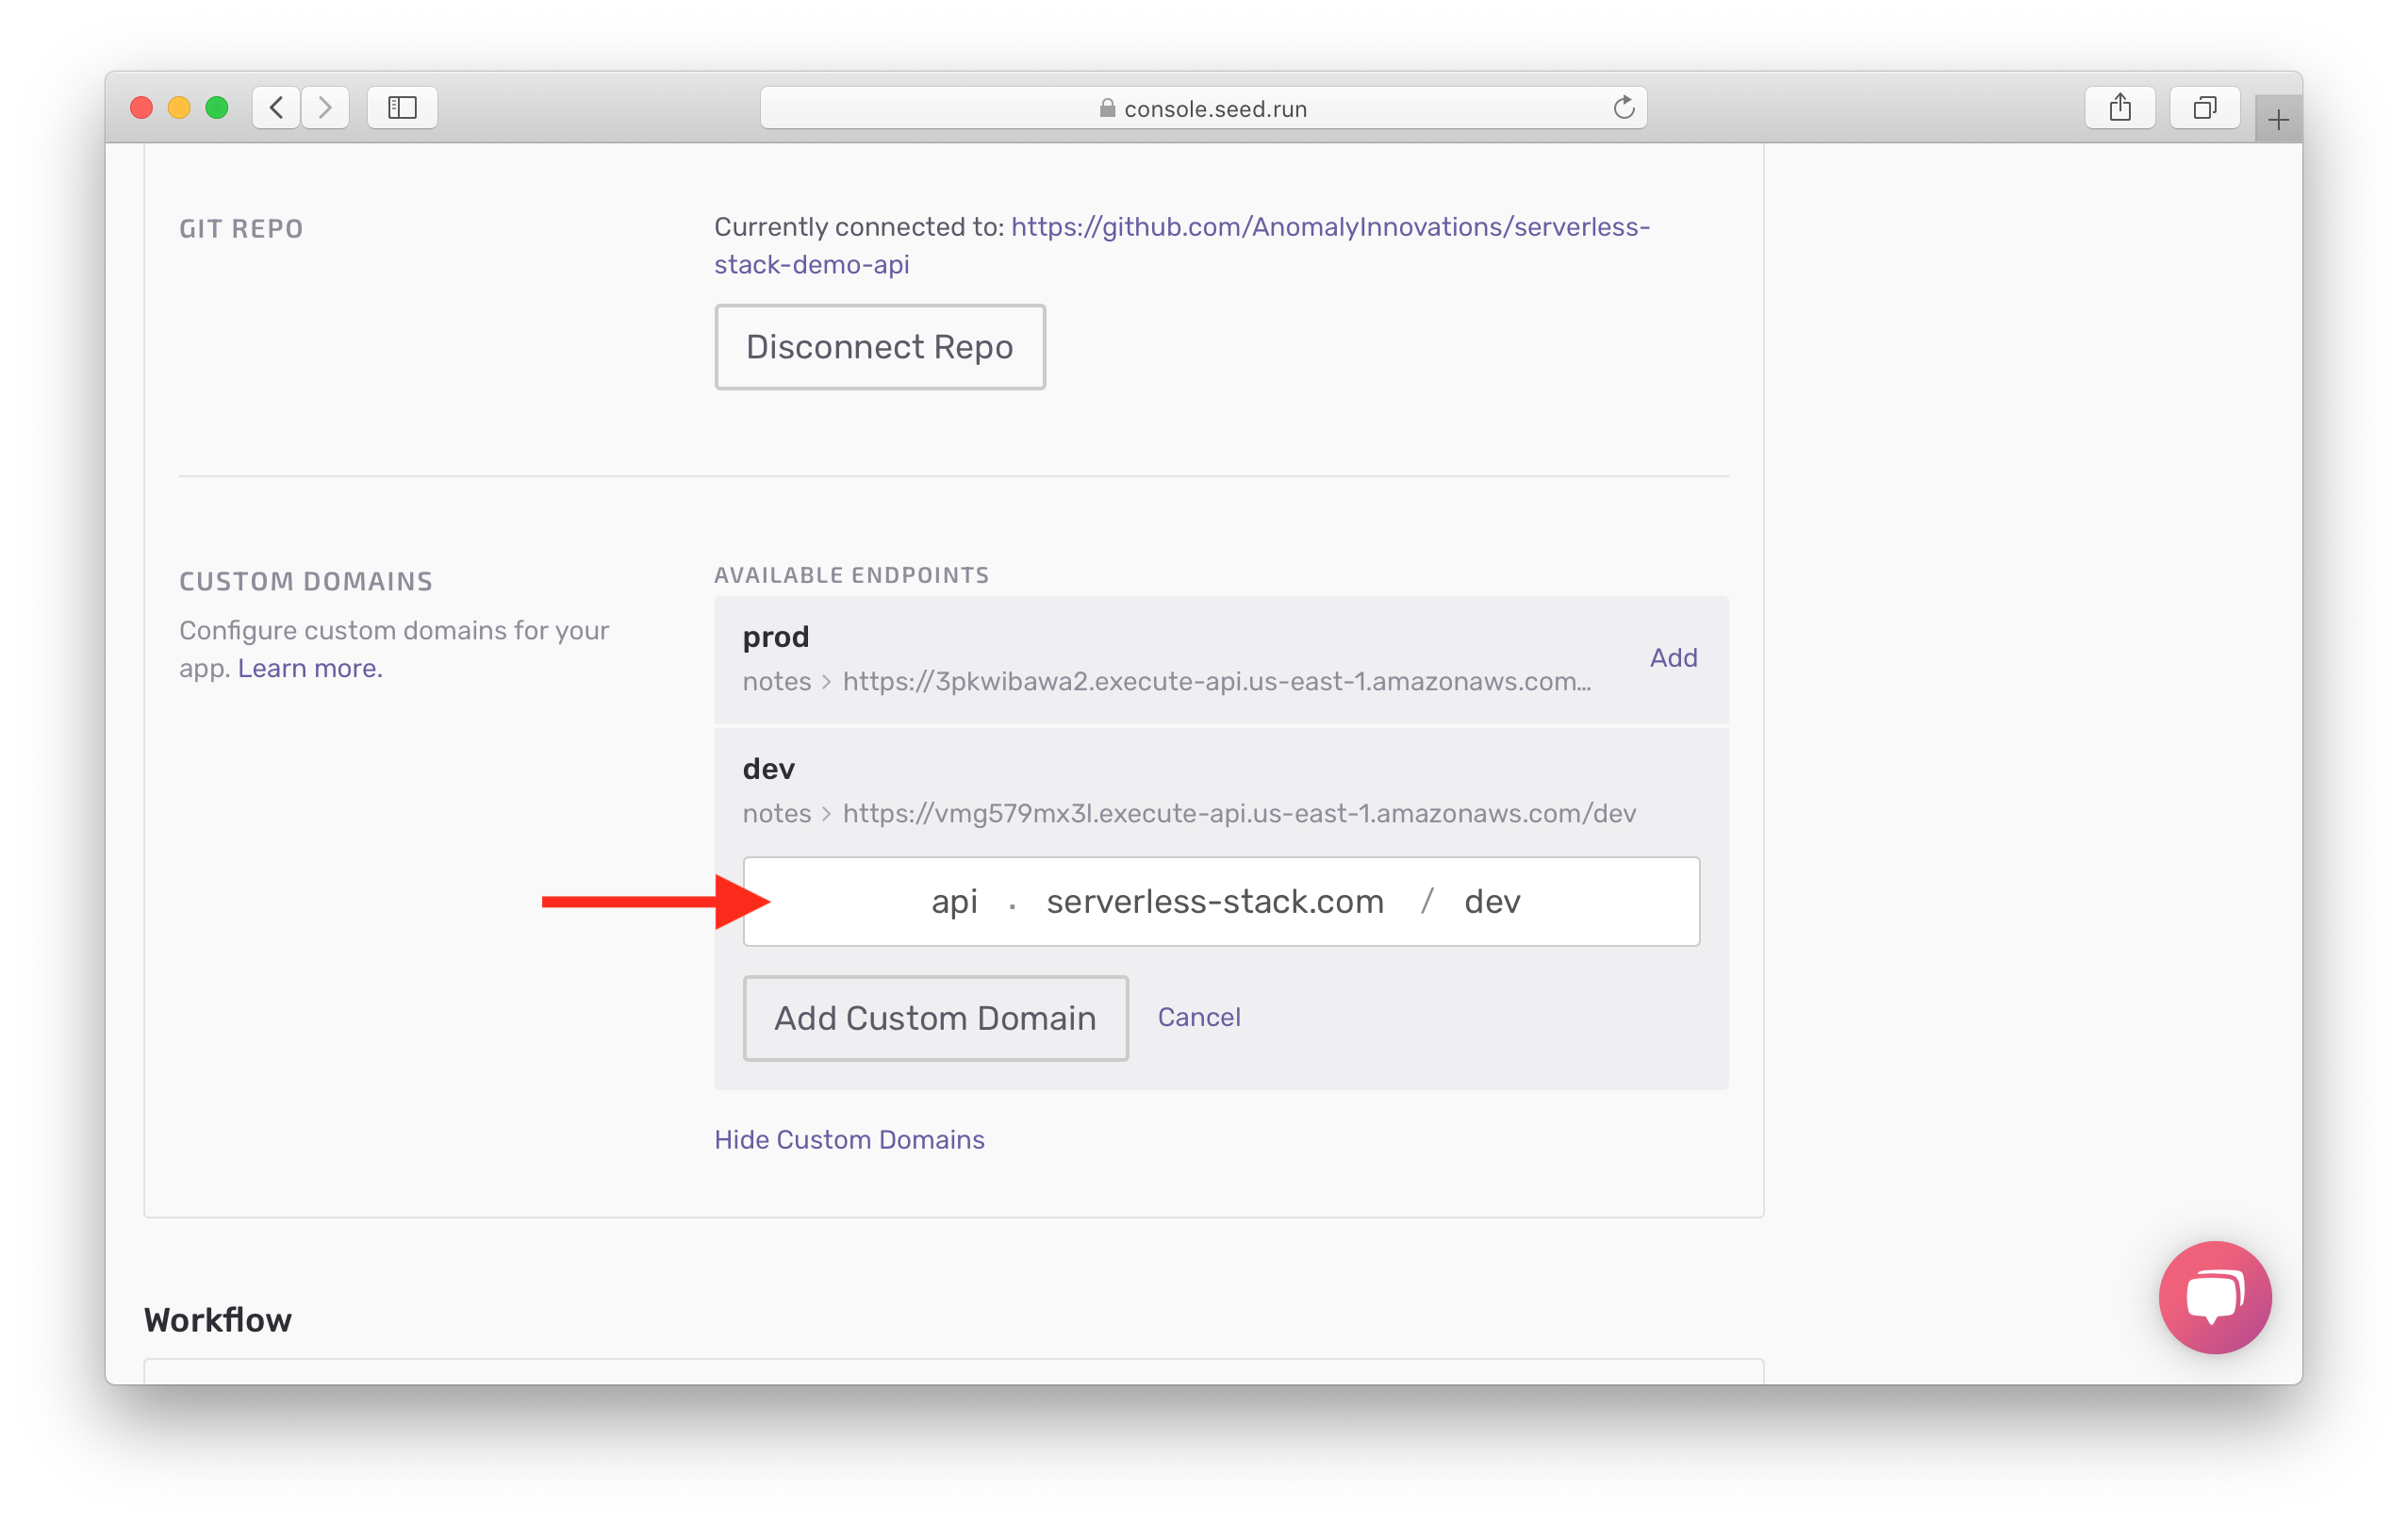 Click Add Custom Domain button for dev endpoint